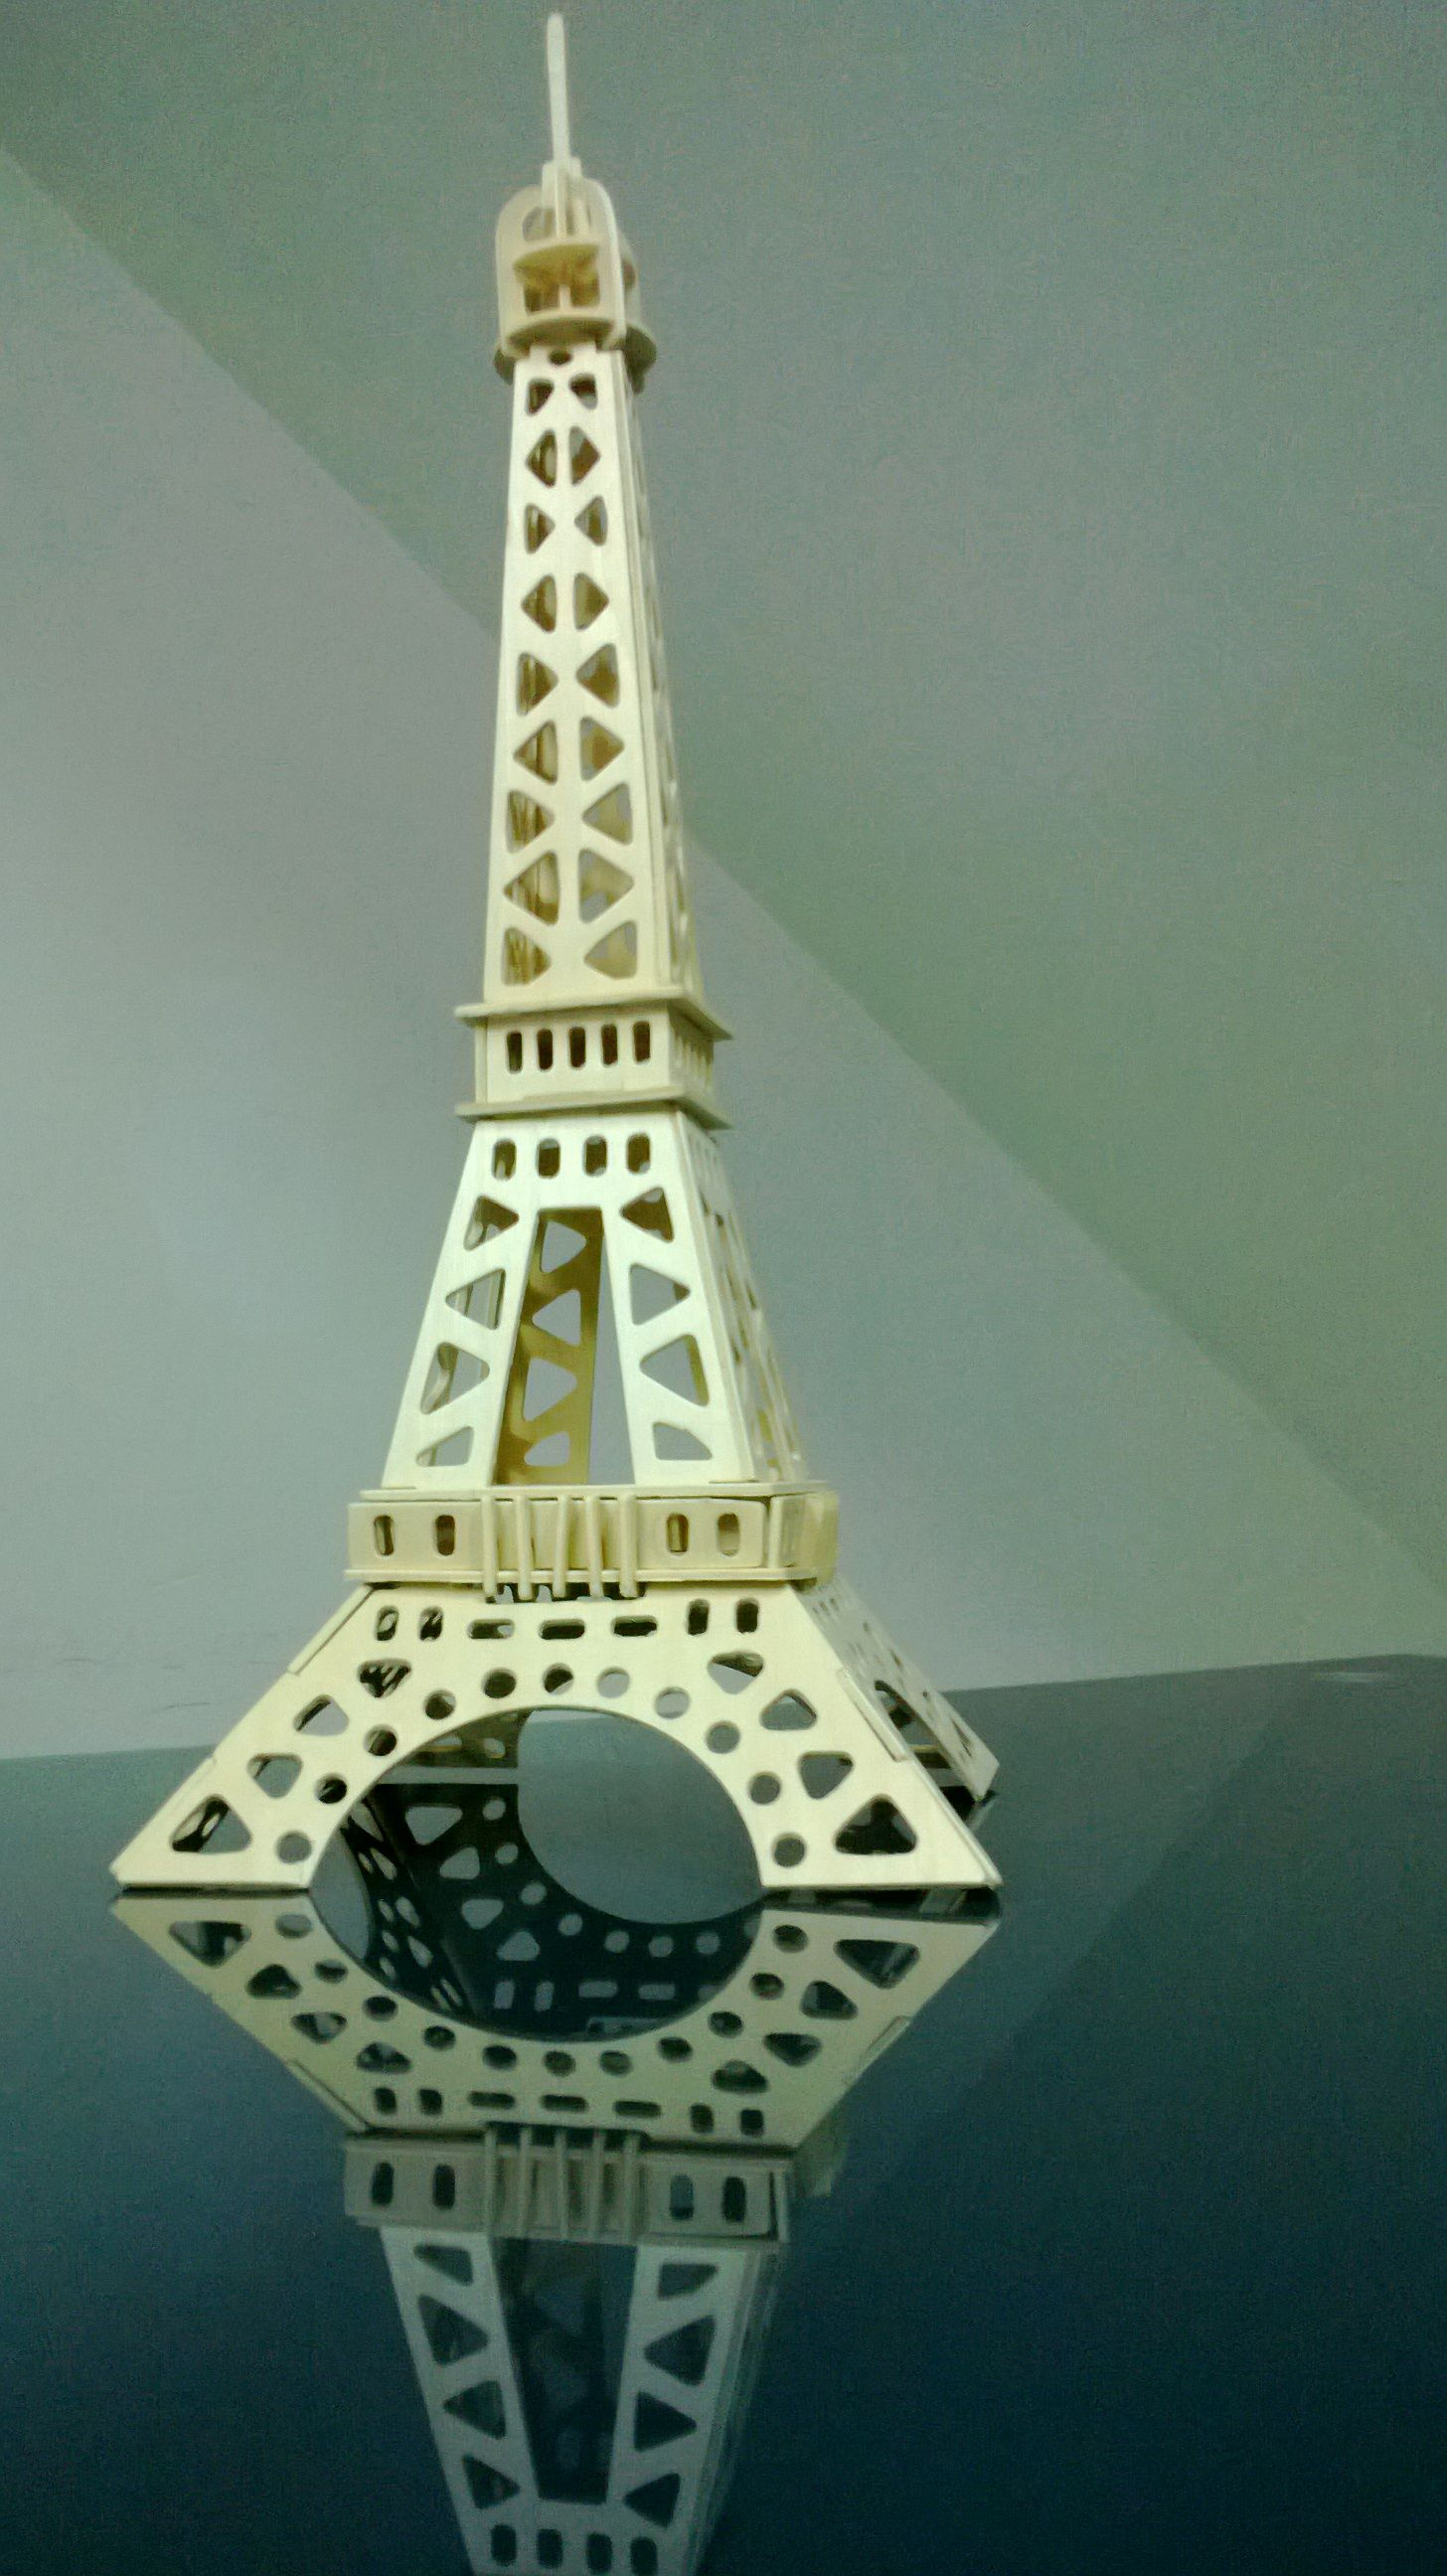 TORRE EIFFEL¡ MAQUETA | DIY projects | Pinterest | Torres eiffel ...